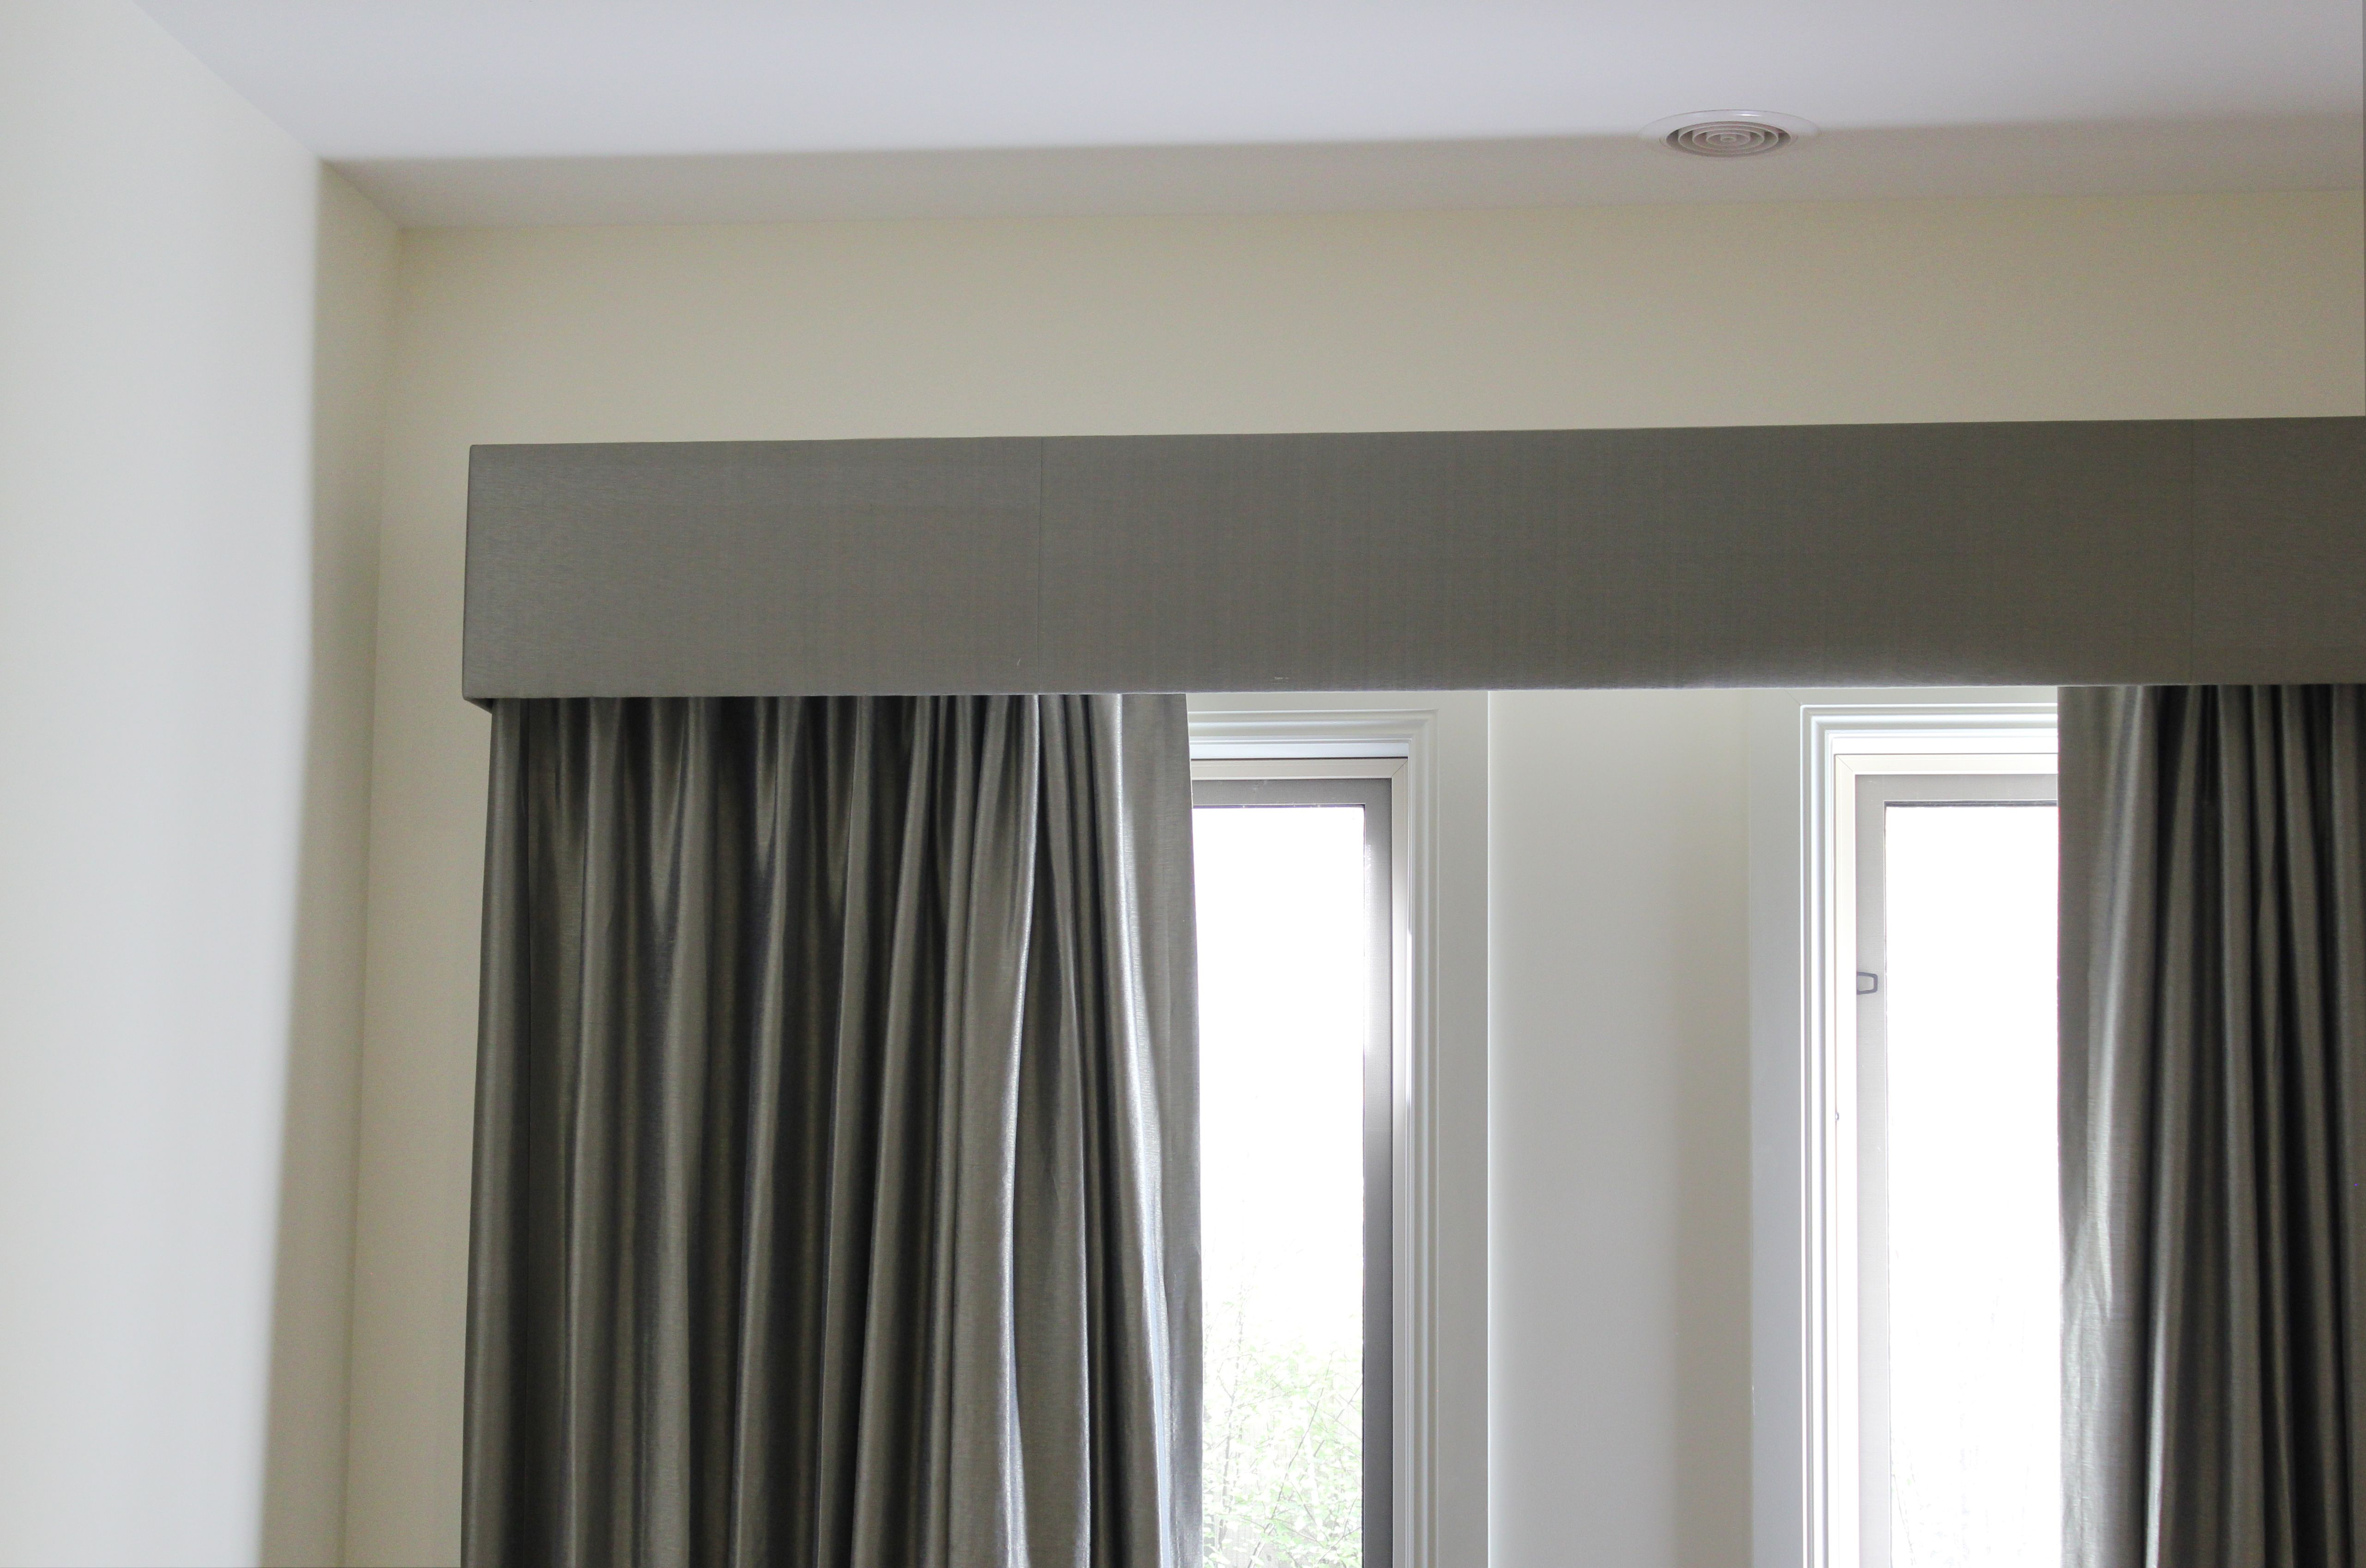 Silk Fabric Curtains With Voile Sheers And Contrast